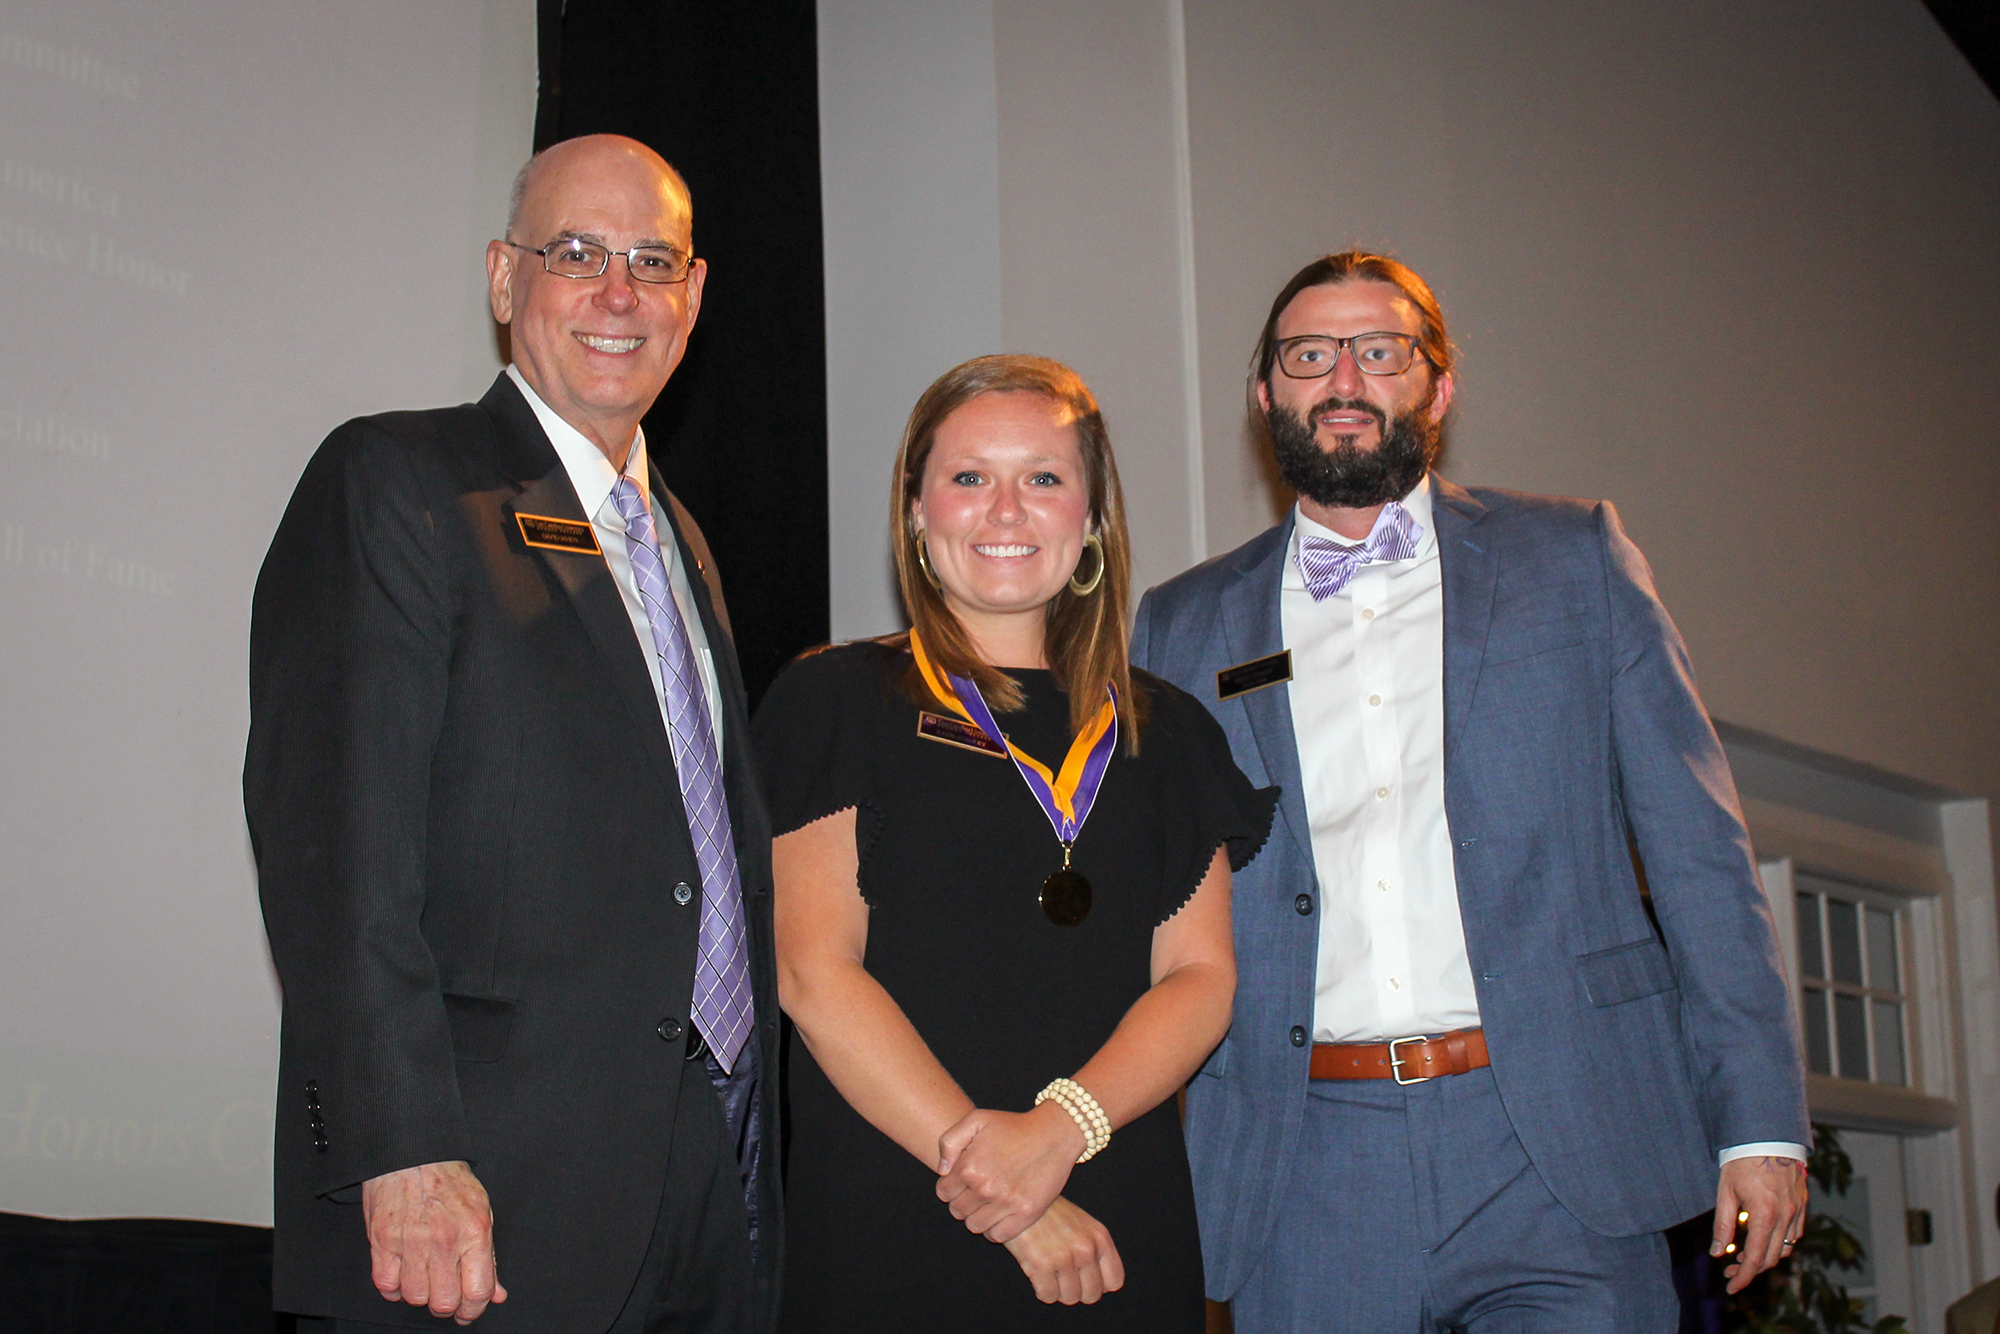 Pictured here at the 2017 ECU Honors College Commencement Ceremony, Katie Stanley (middle), was one of four recent UNC system graduates named a Presidential Scholar by UNC President Margaret Spellings Thursday, July 20.